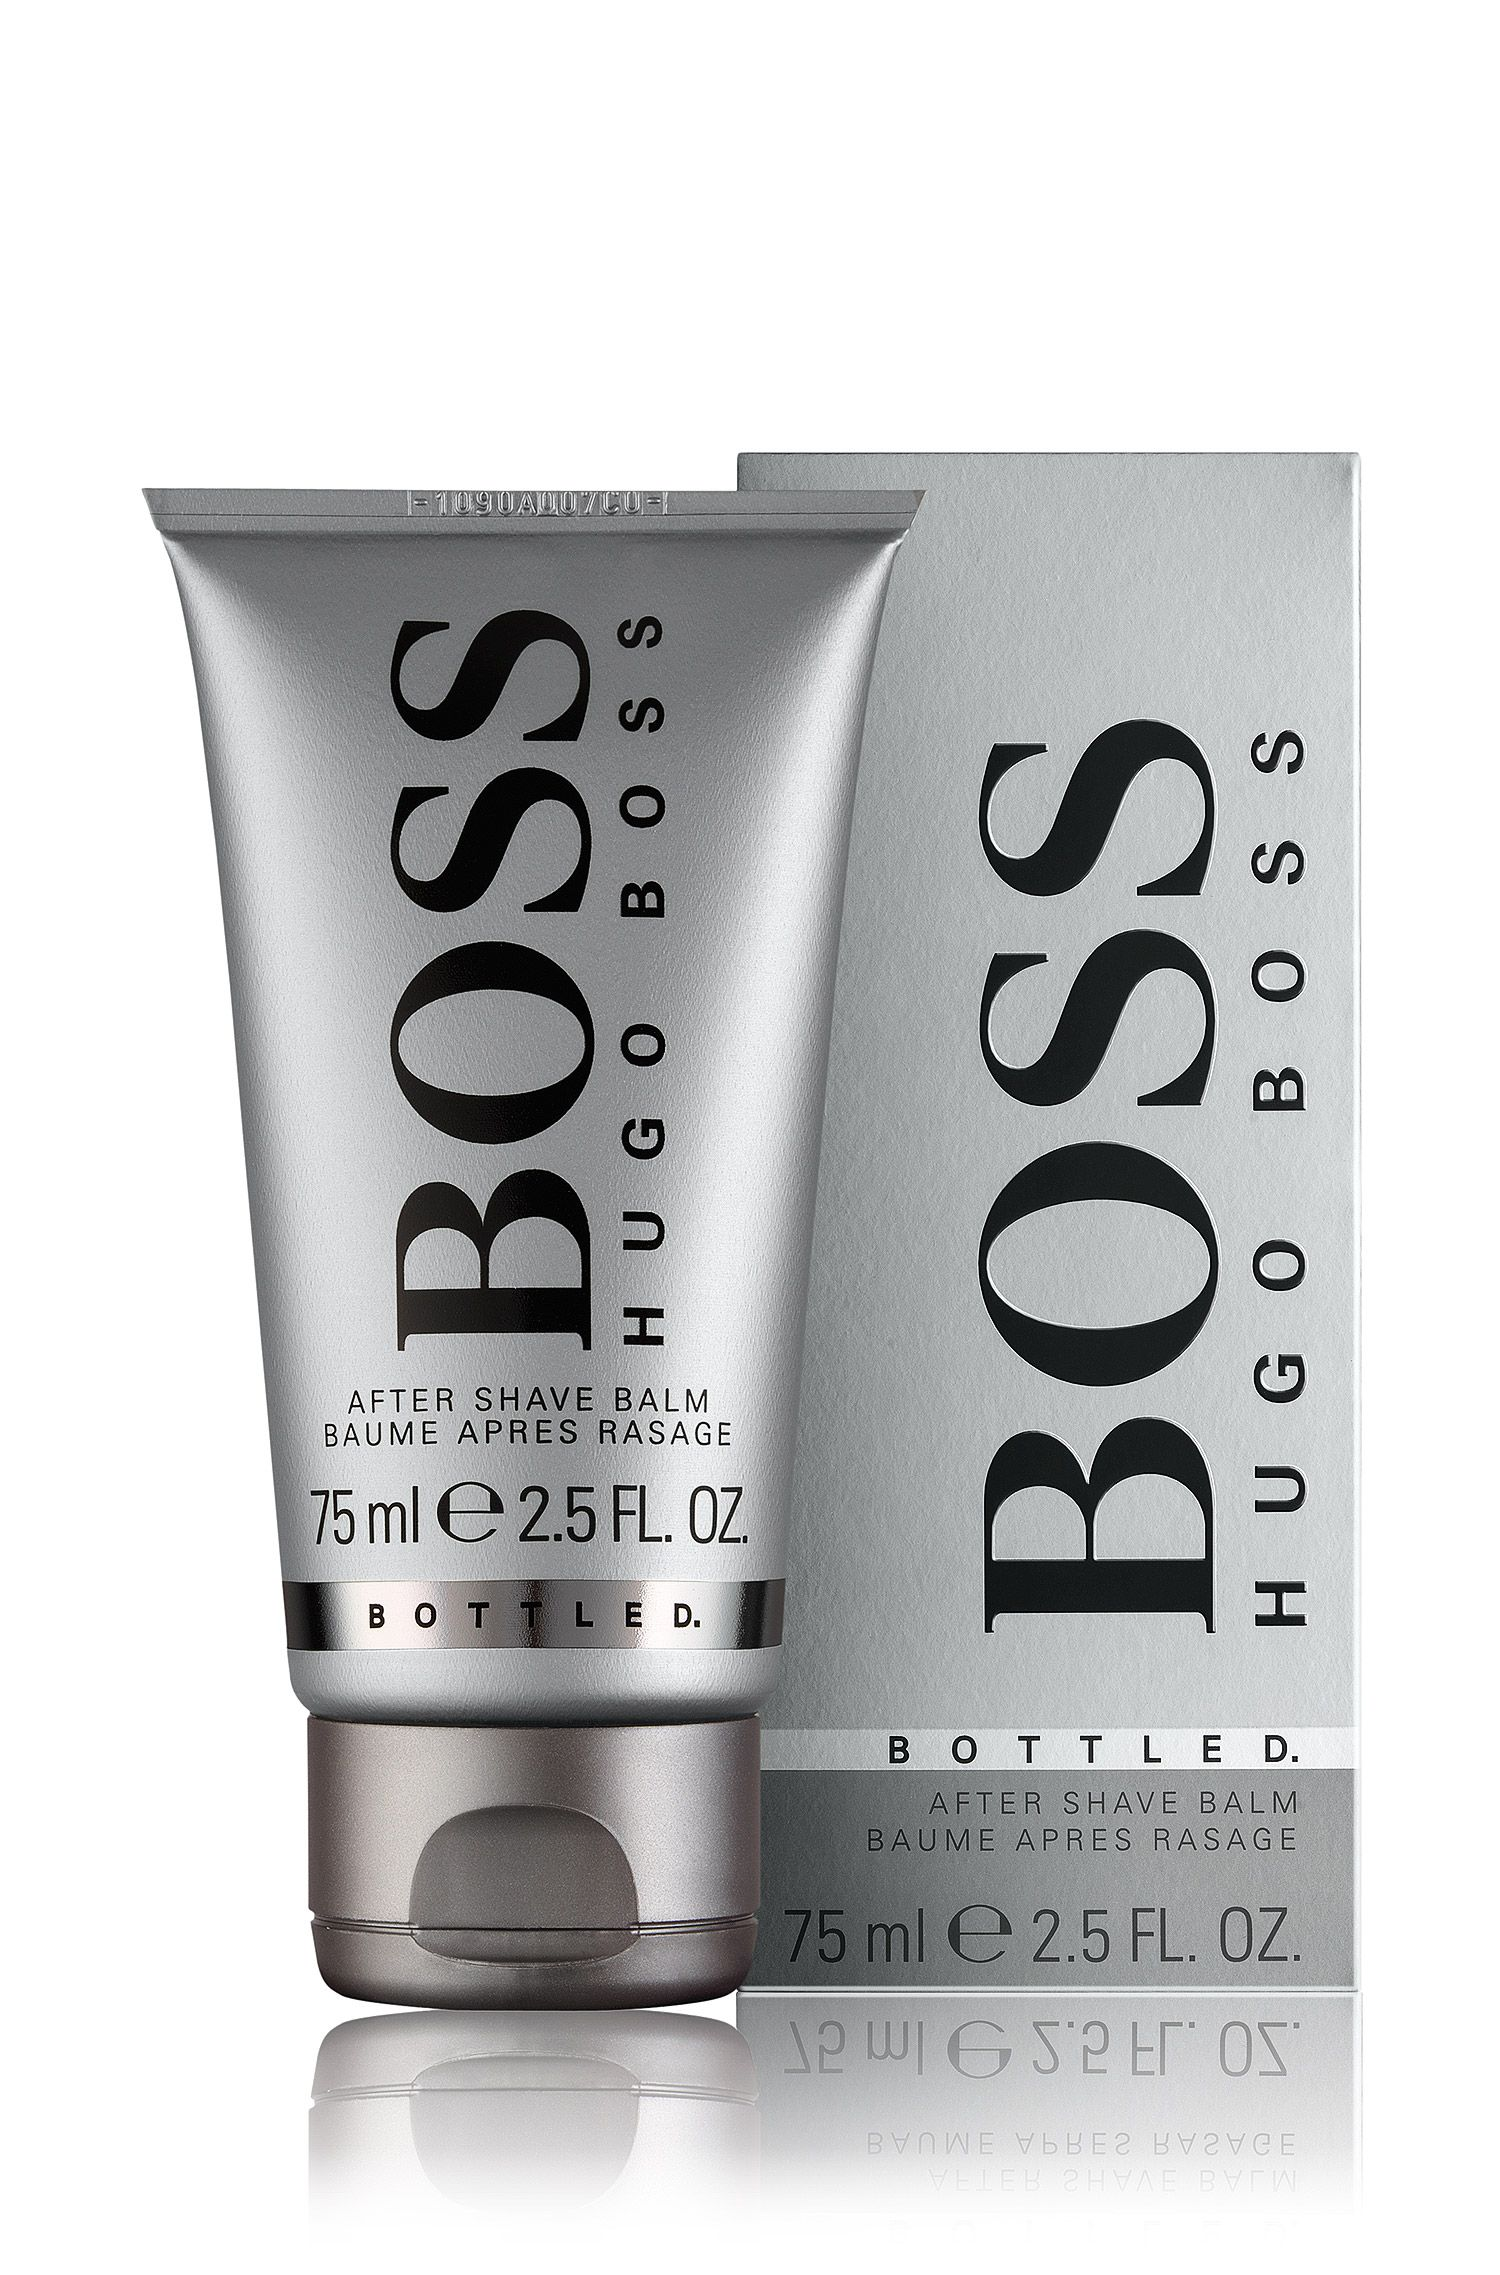 BOSS Bottled aftershave balm 75ml